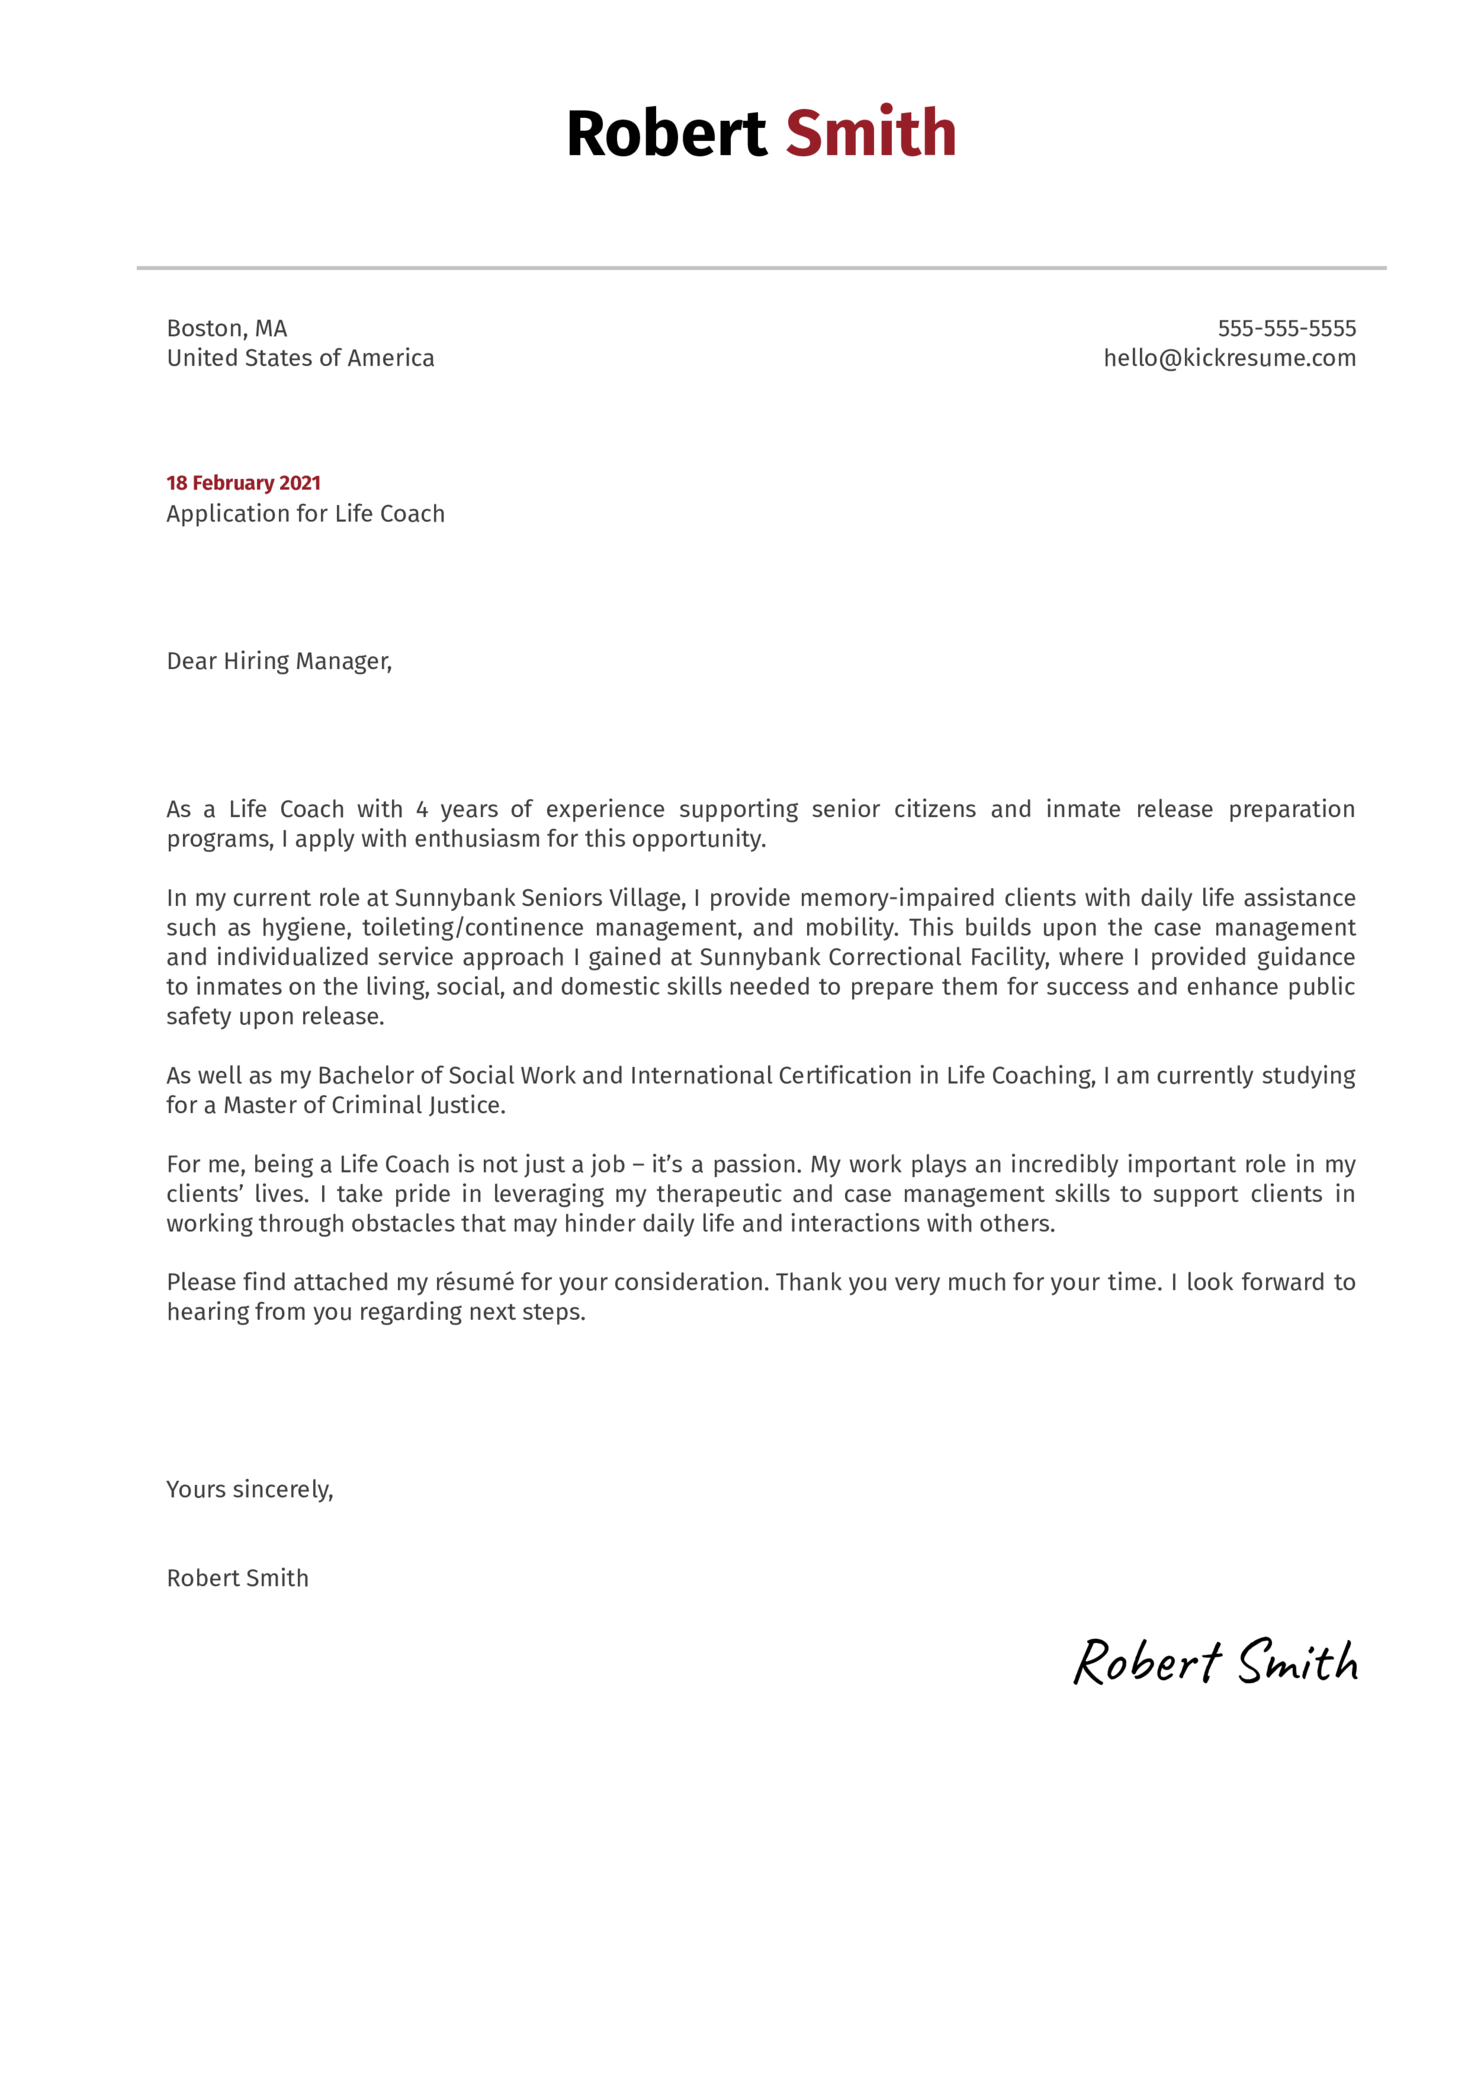 Life Coach Cover Letter Template